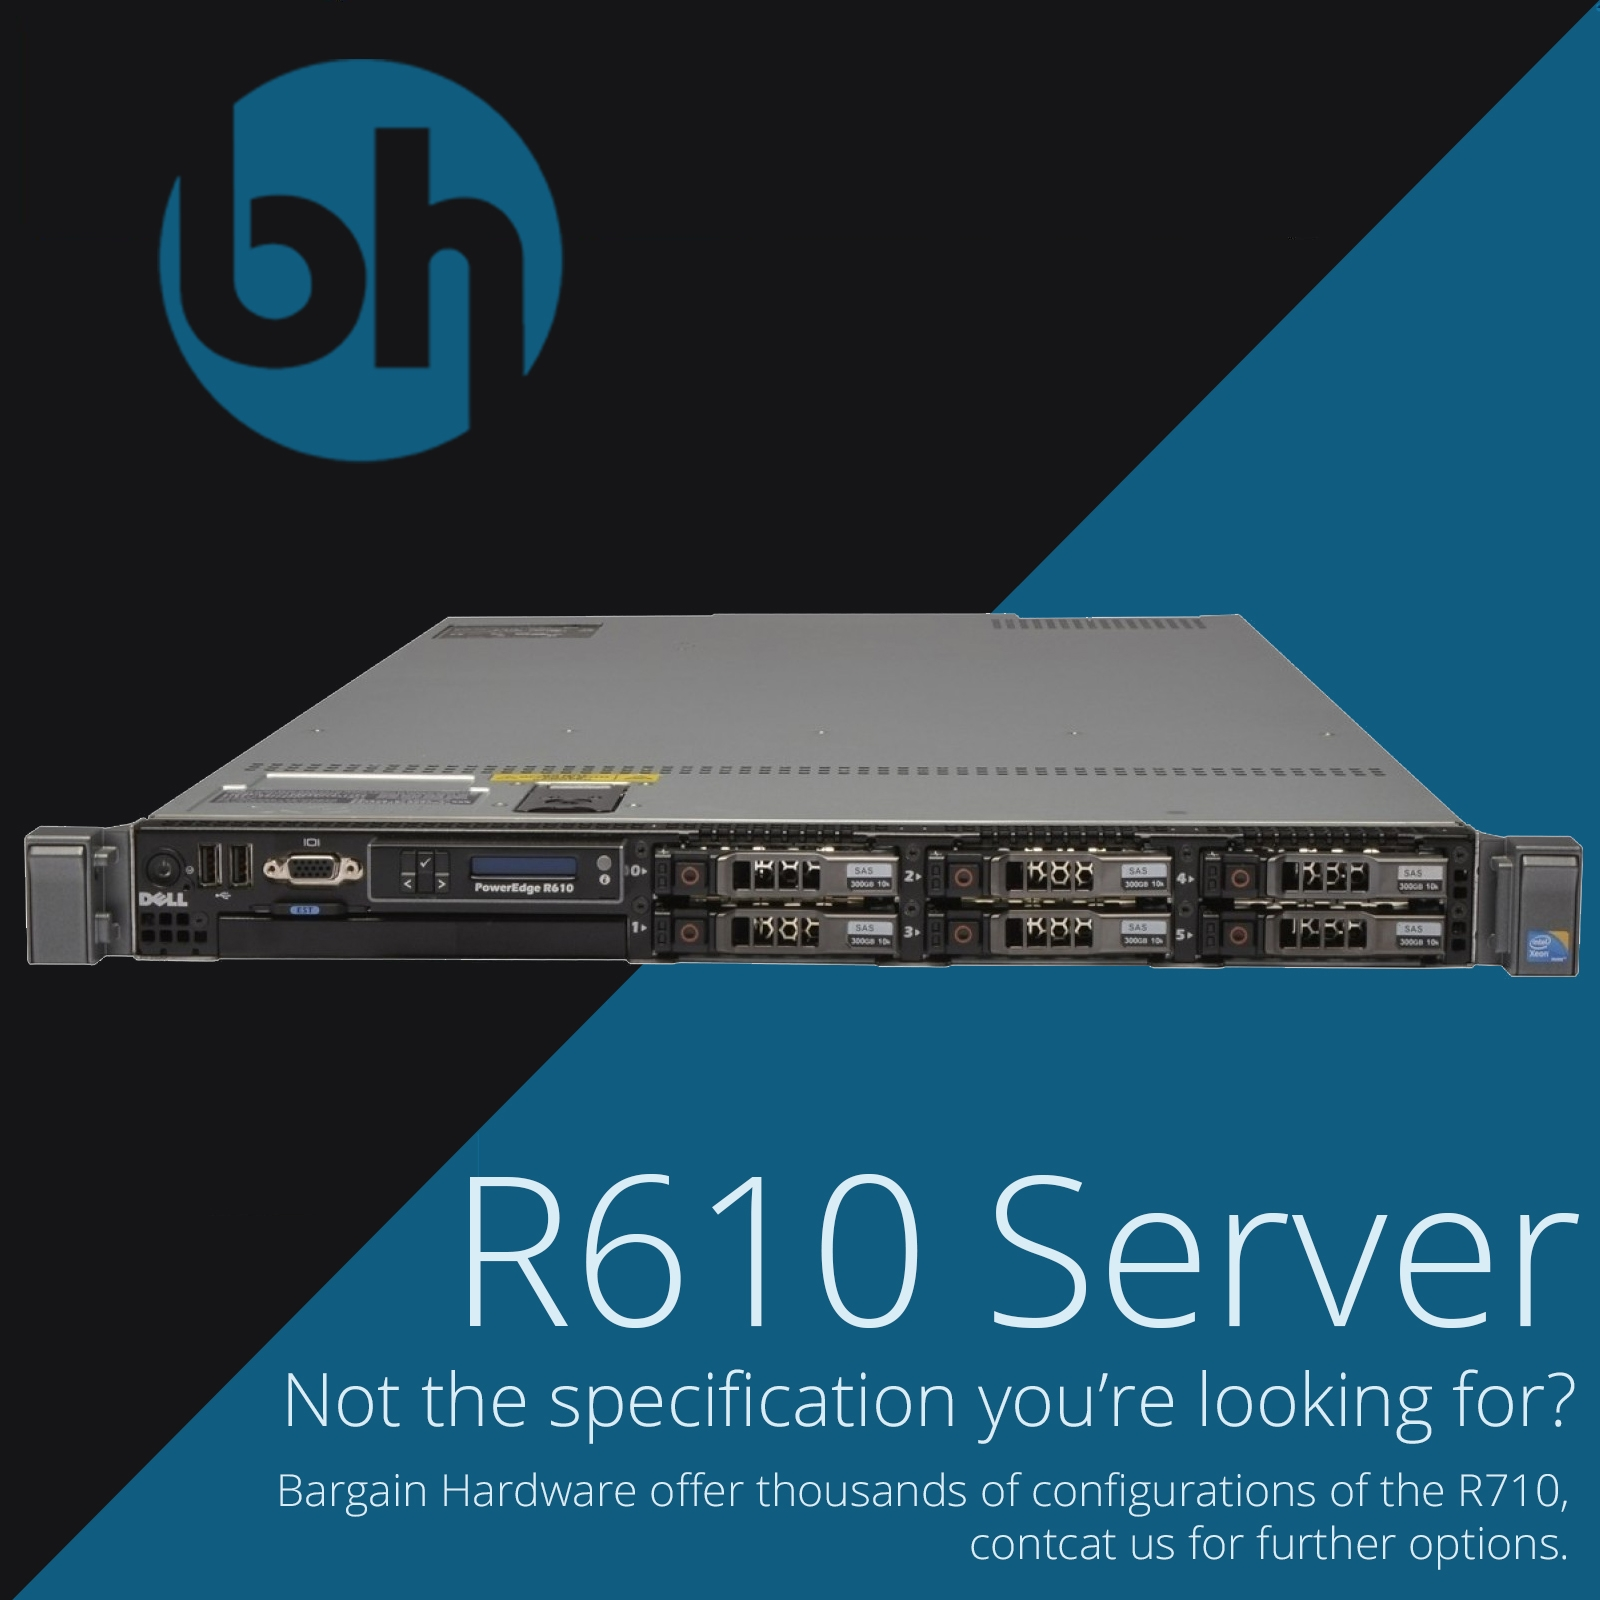 Details about Dell PowerEdge R610 2x 4/6-Core Intel Xeon Hex PERC H700 RAID  CTO 1U Rack Server